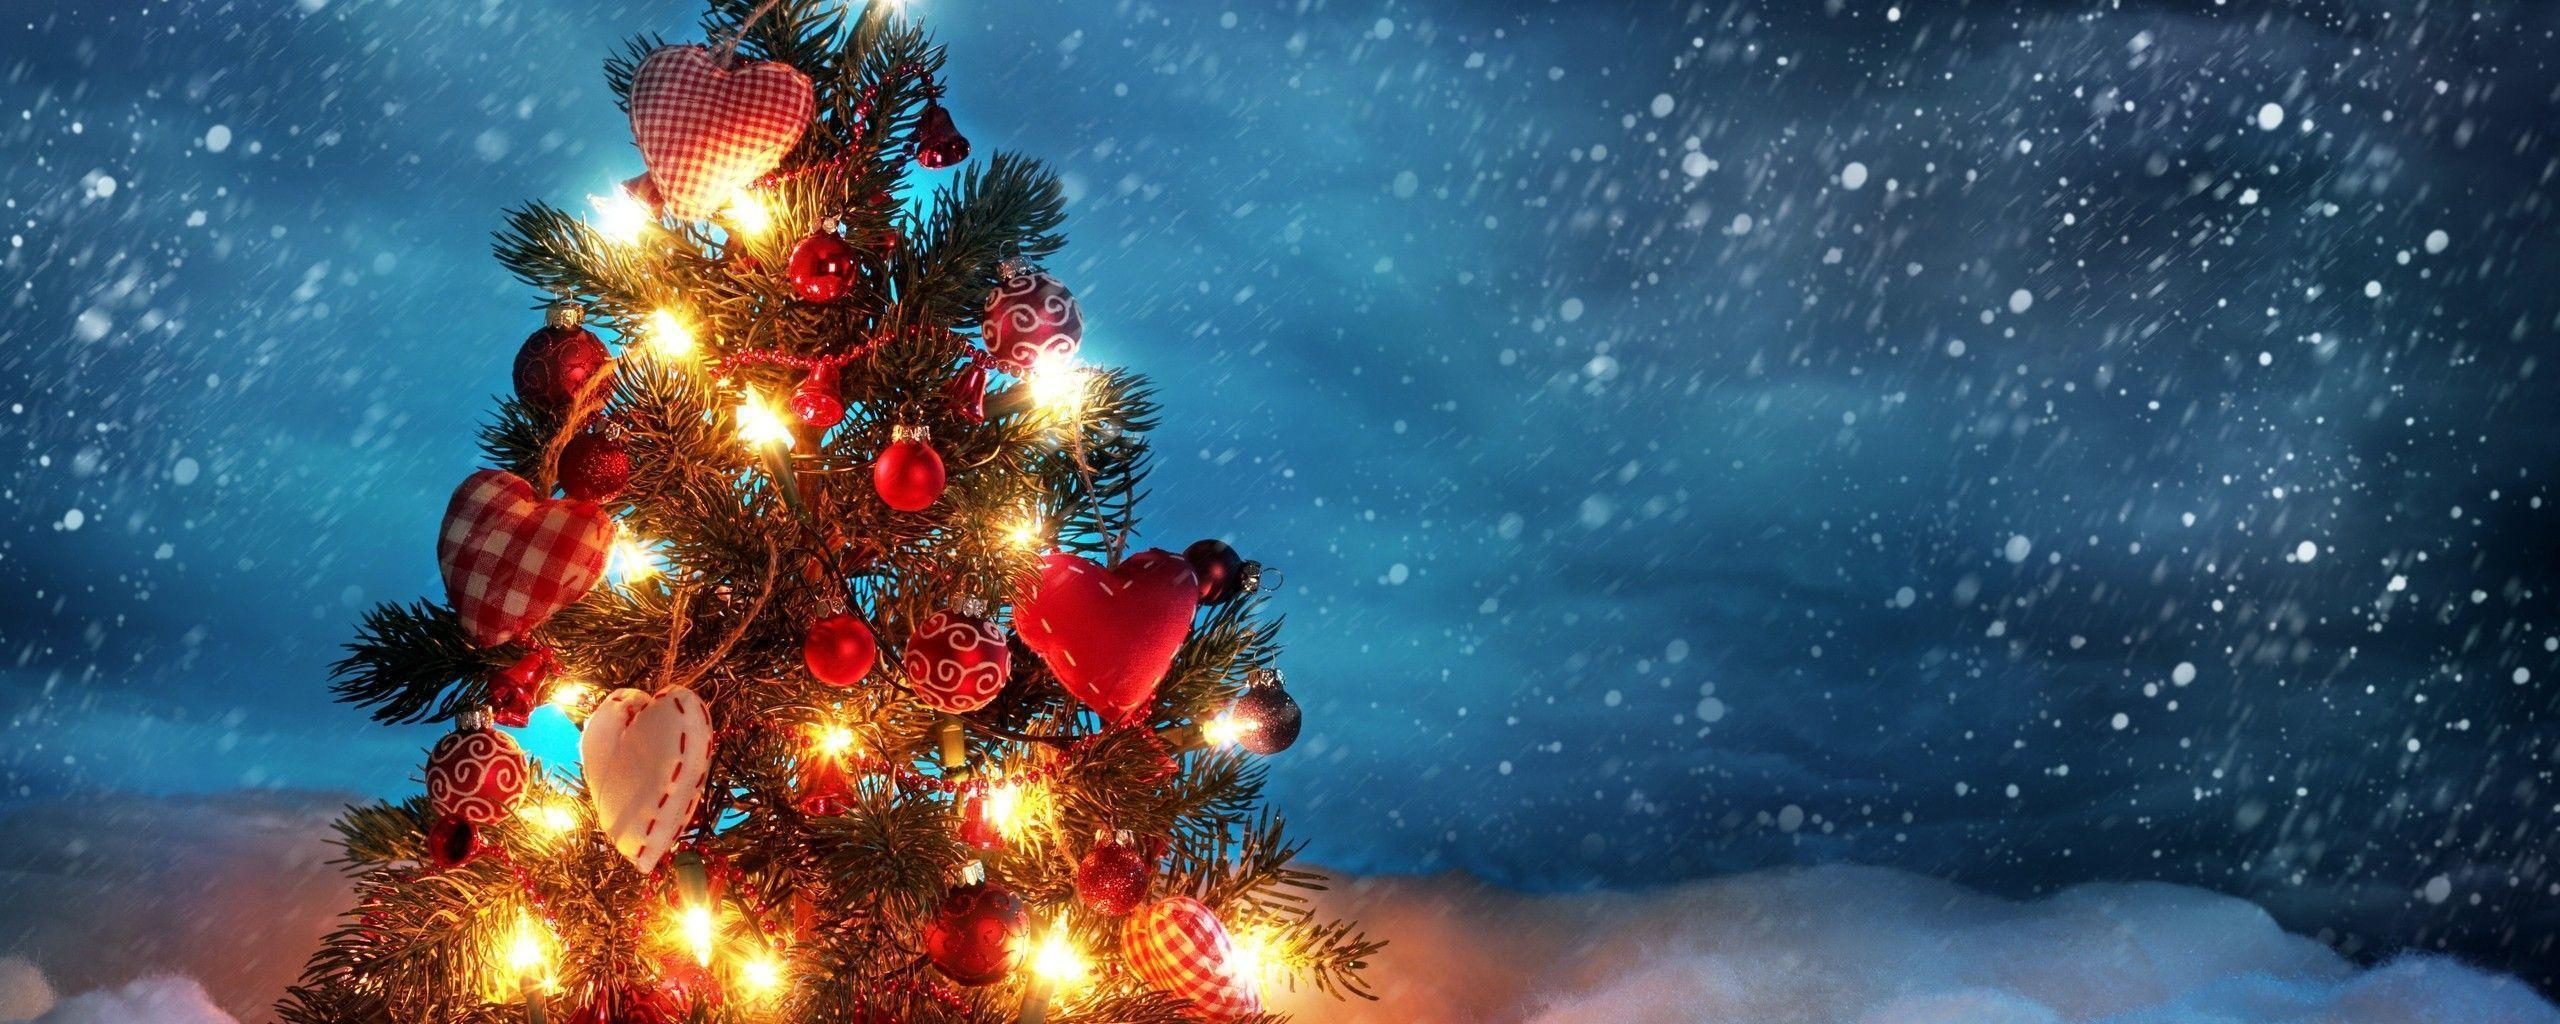 2560x1024 Christmas Screen Backgrounds